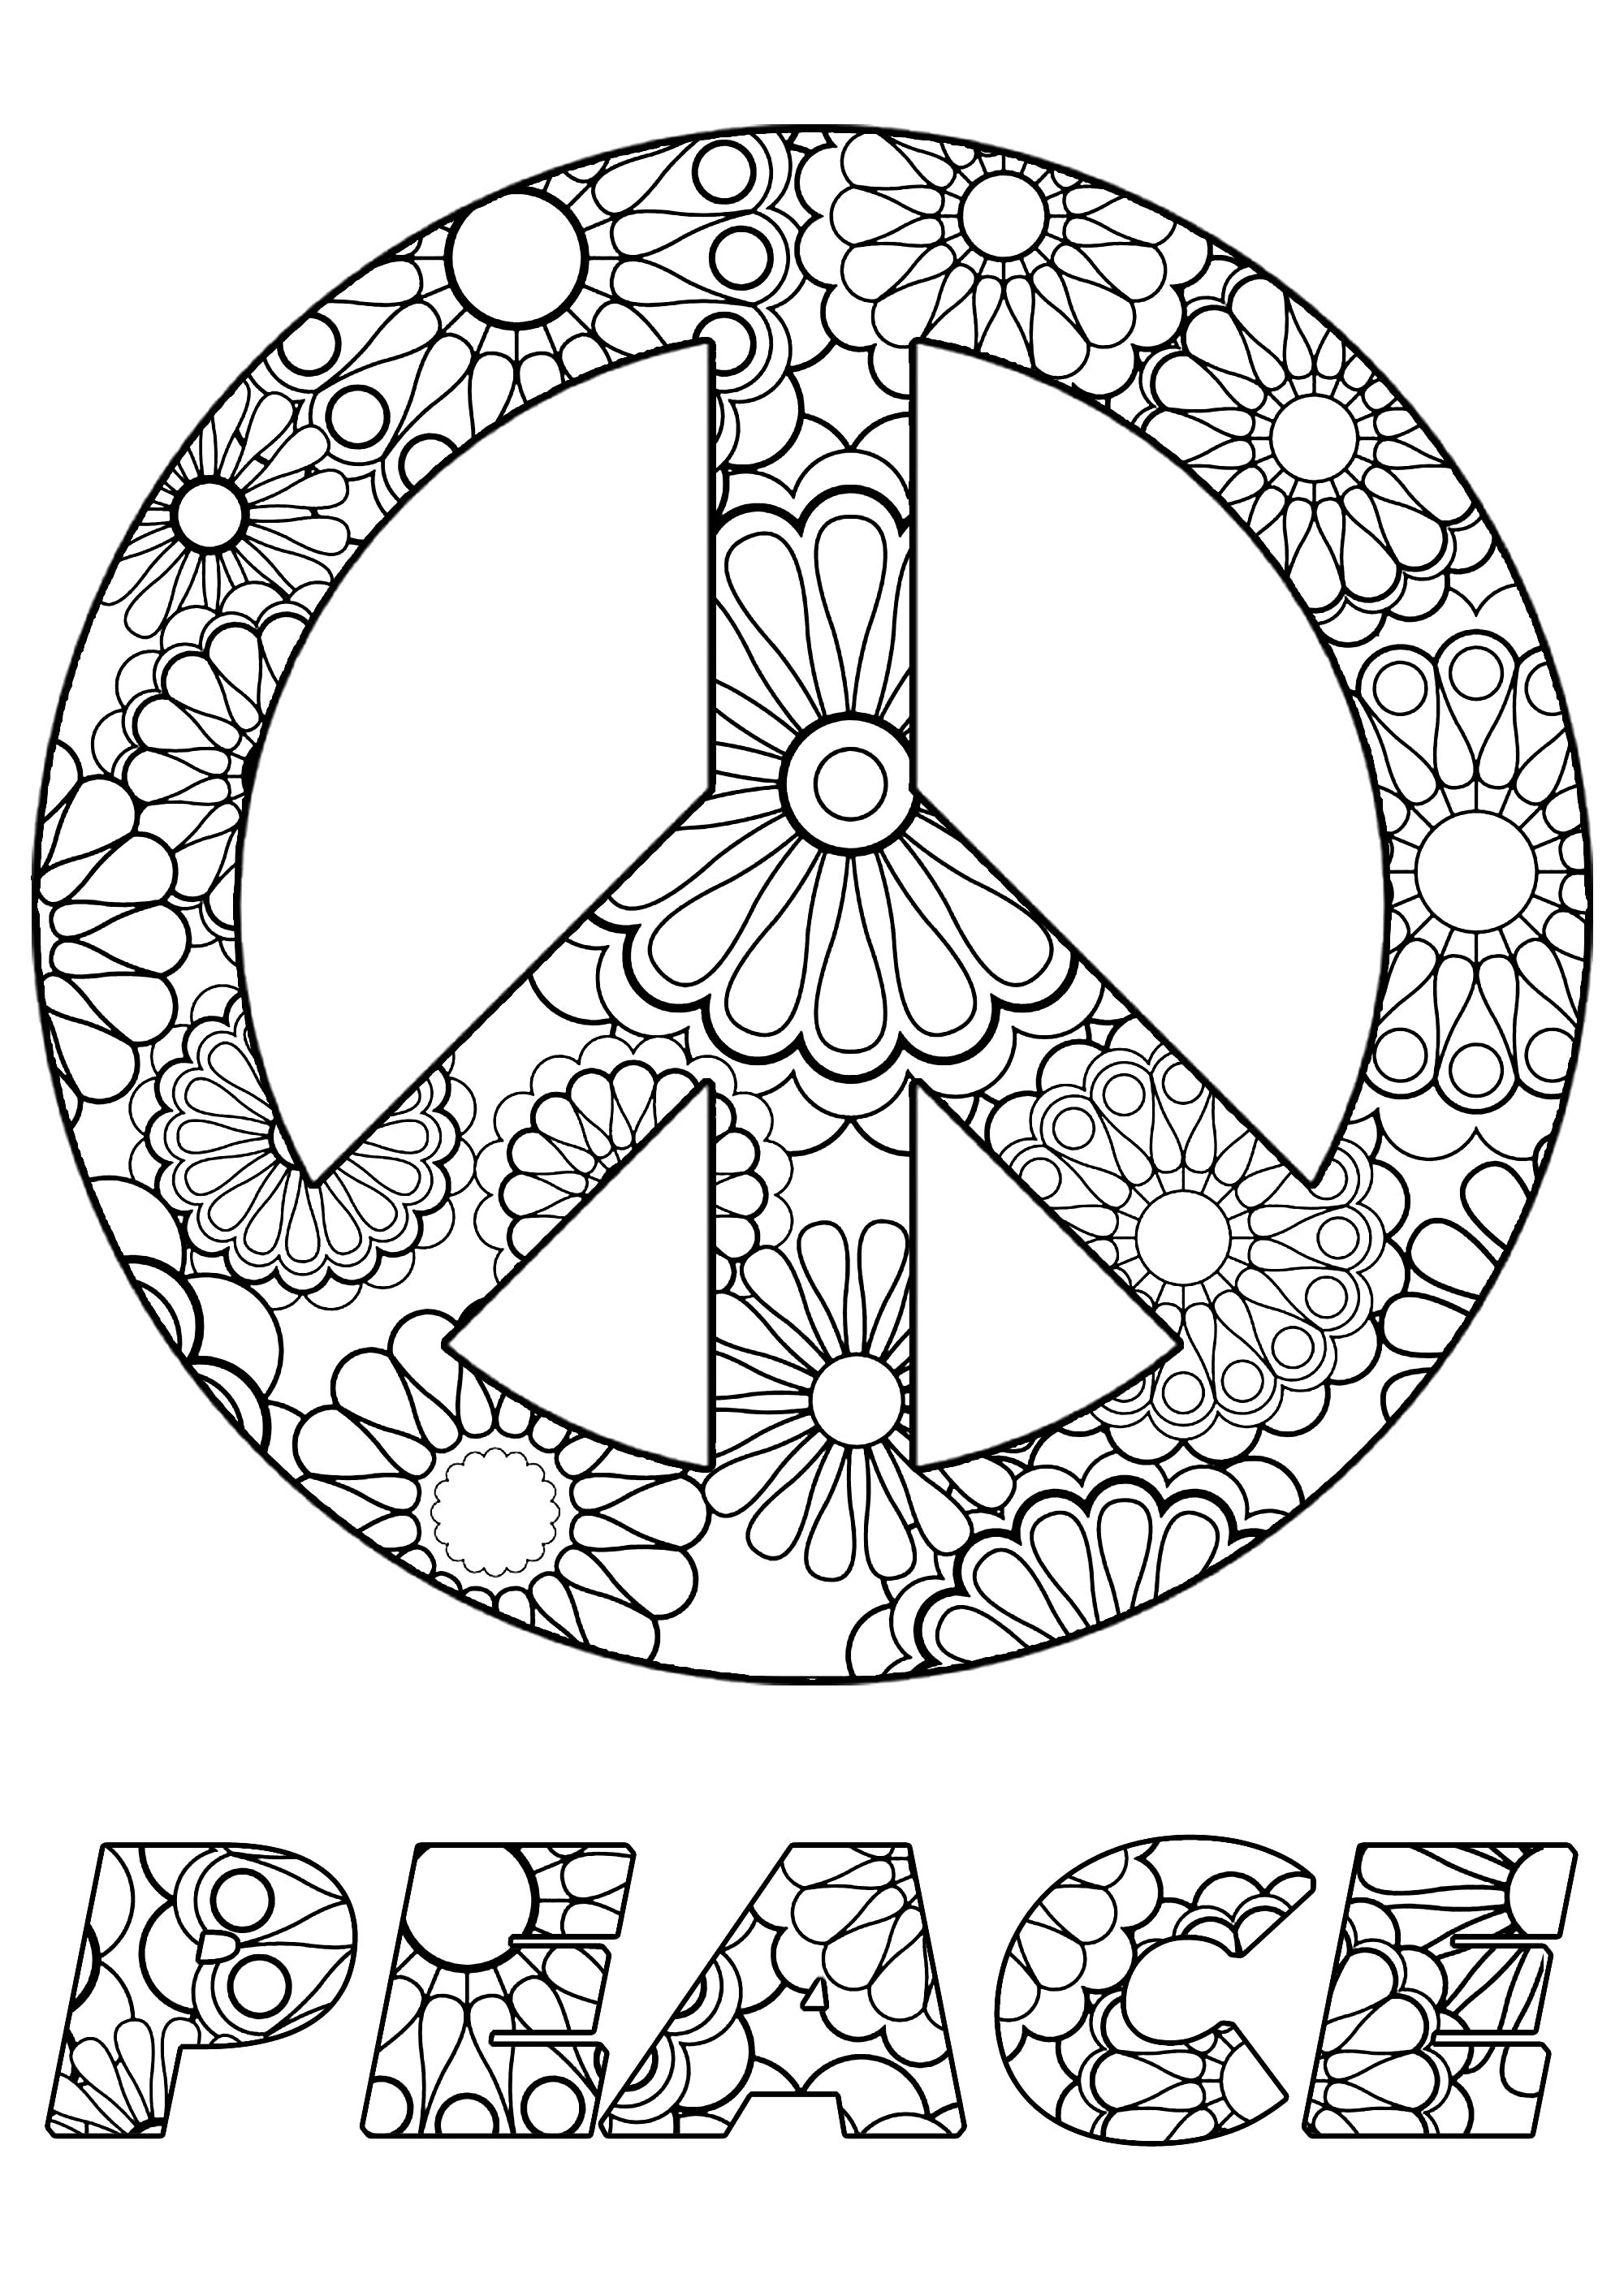 free printable peace sign coloring pages simple and attractive free printable peace sign coloring free peace pages printable coloring sign